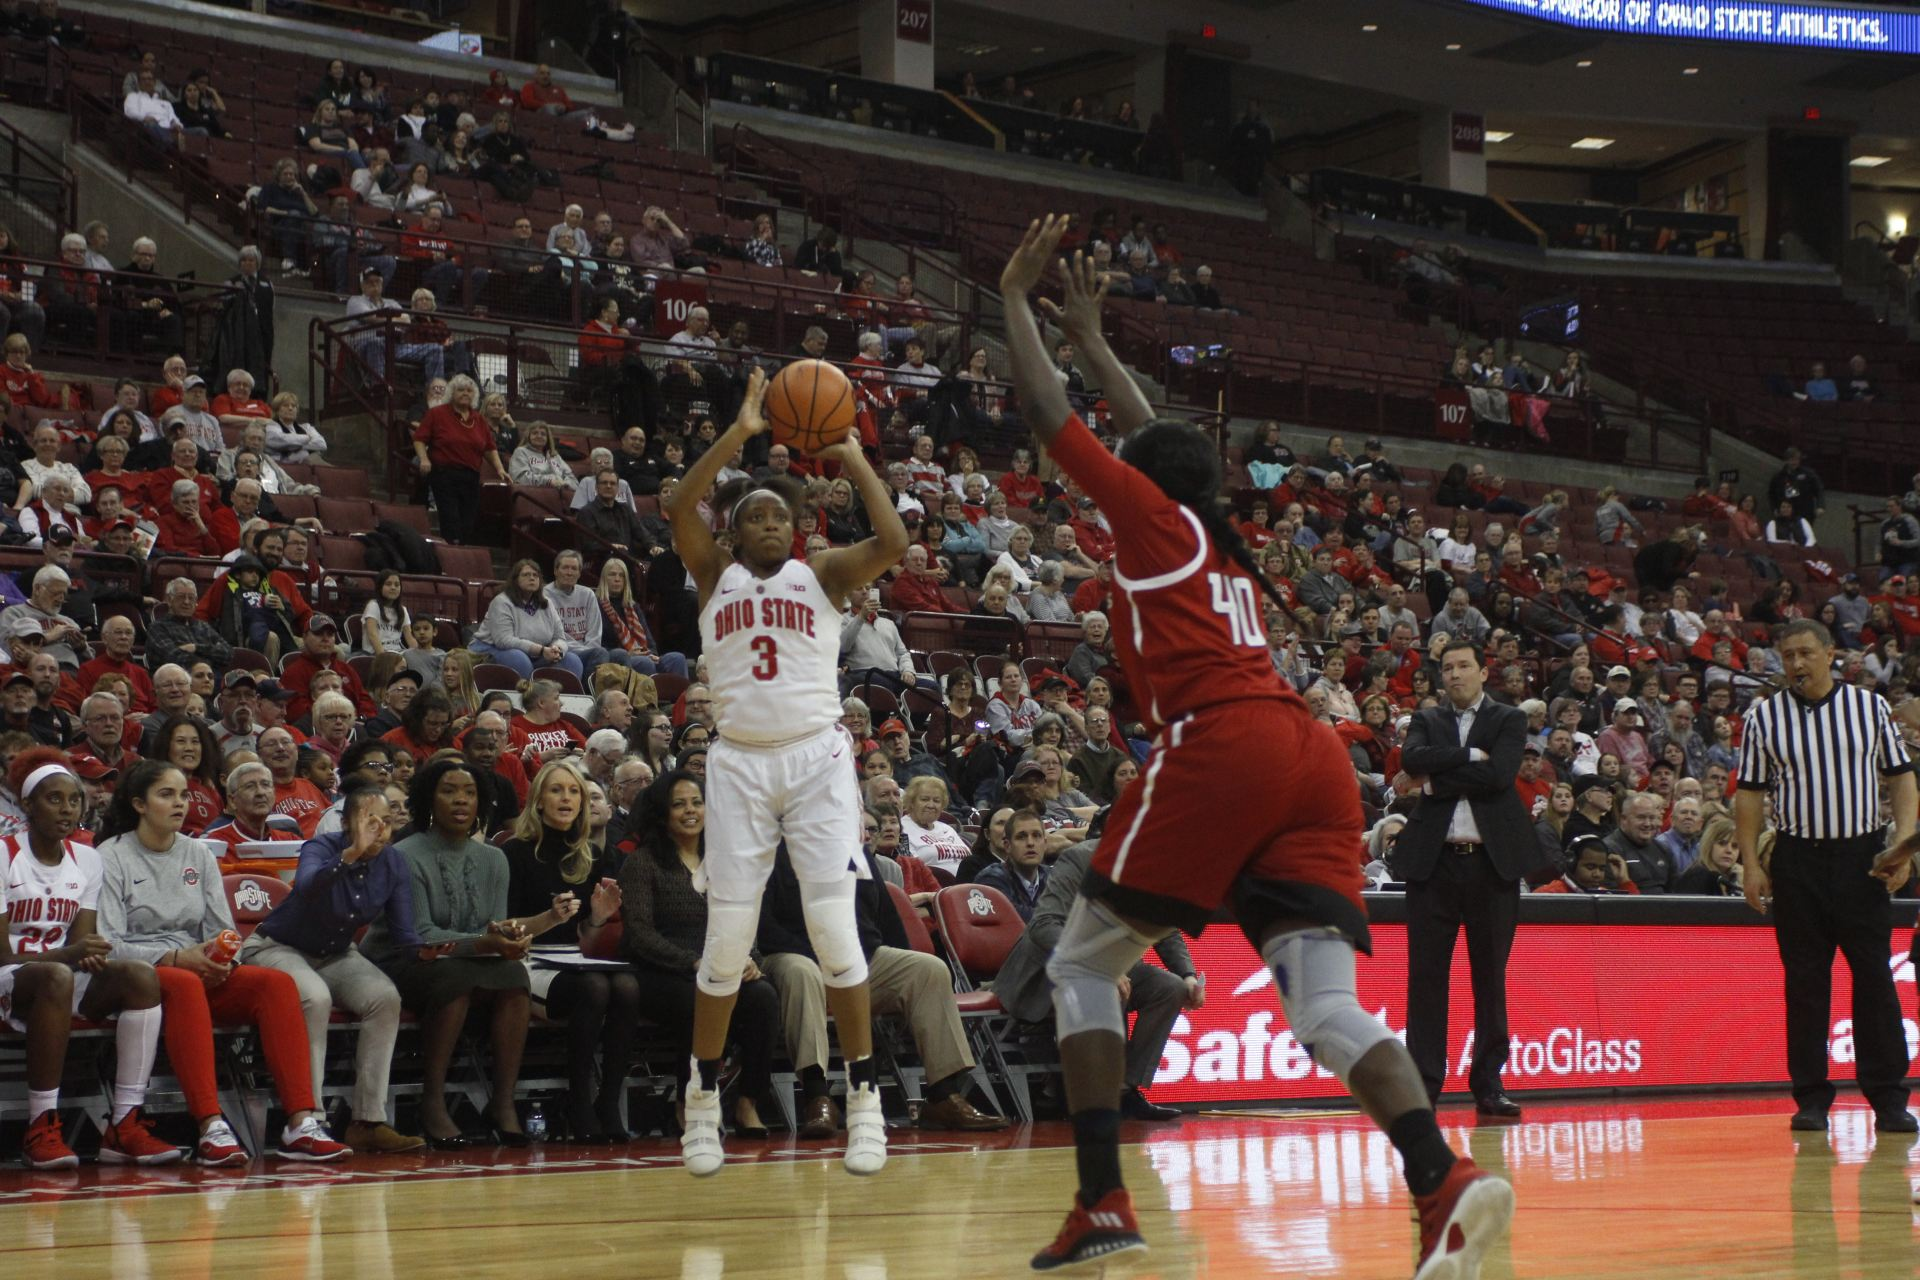 Women's Basketball: No. 13 Ohio State romps Rutgers 90-68 ...